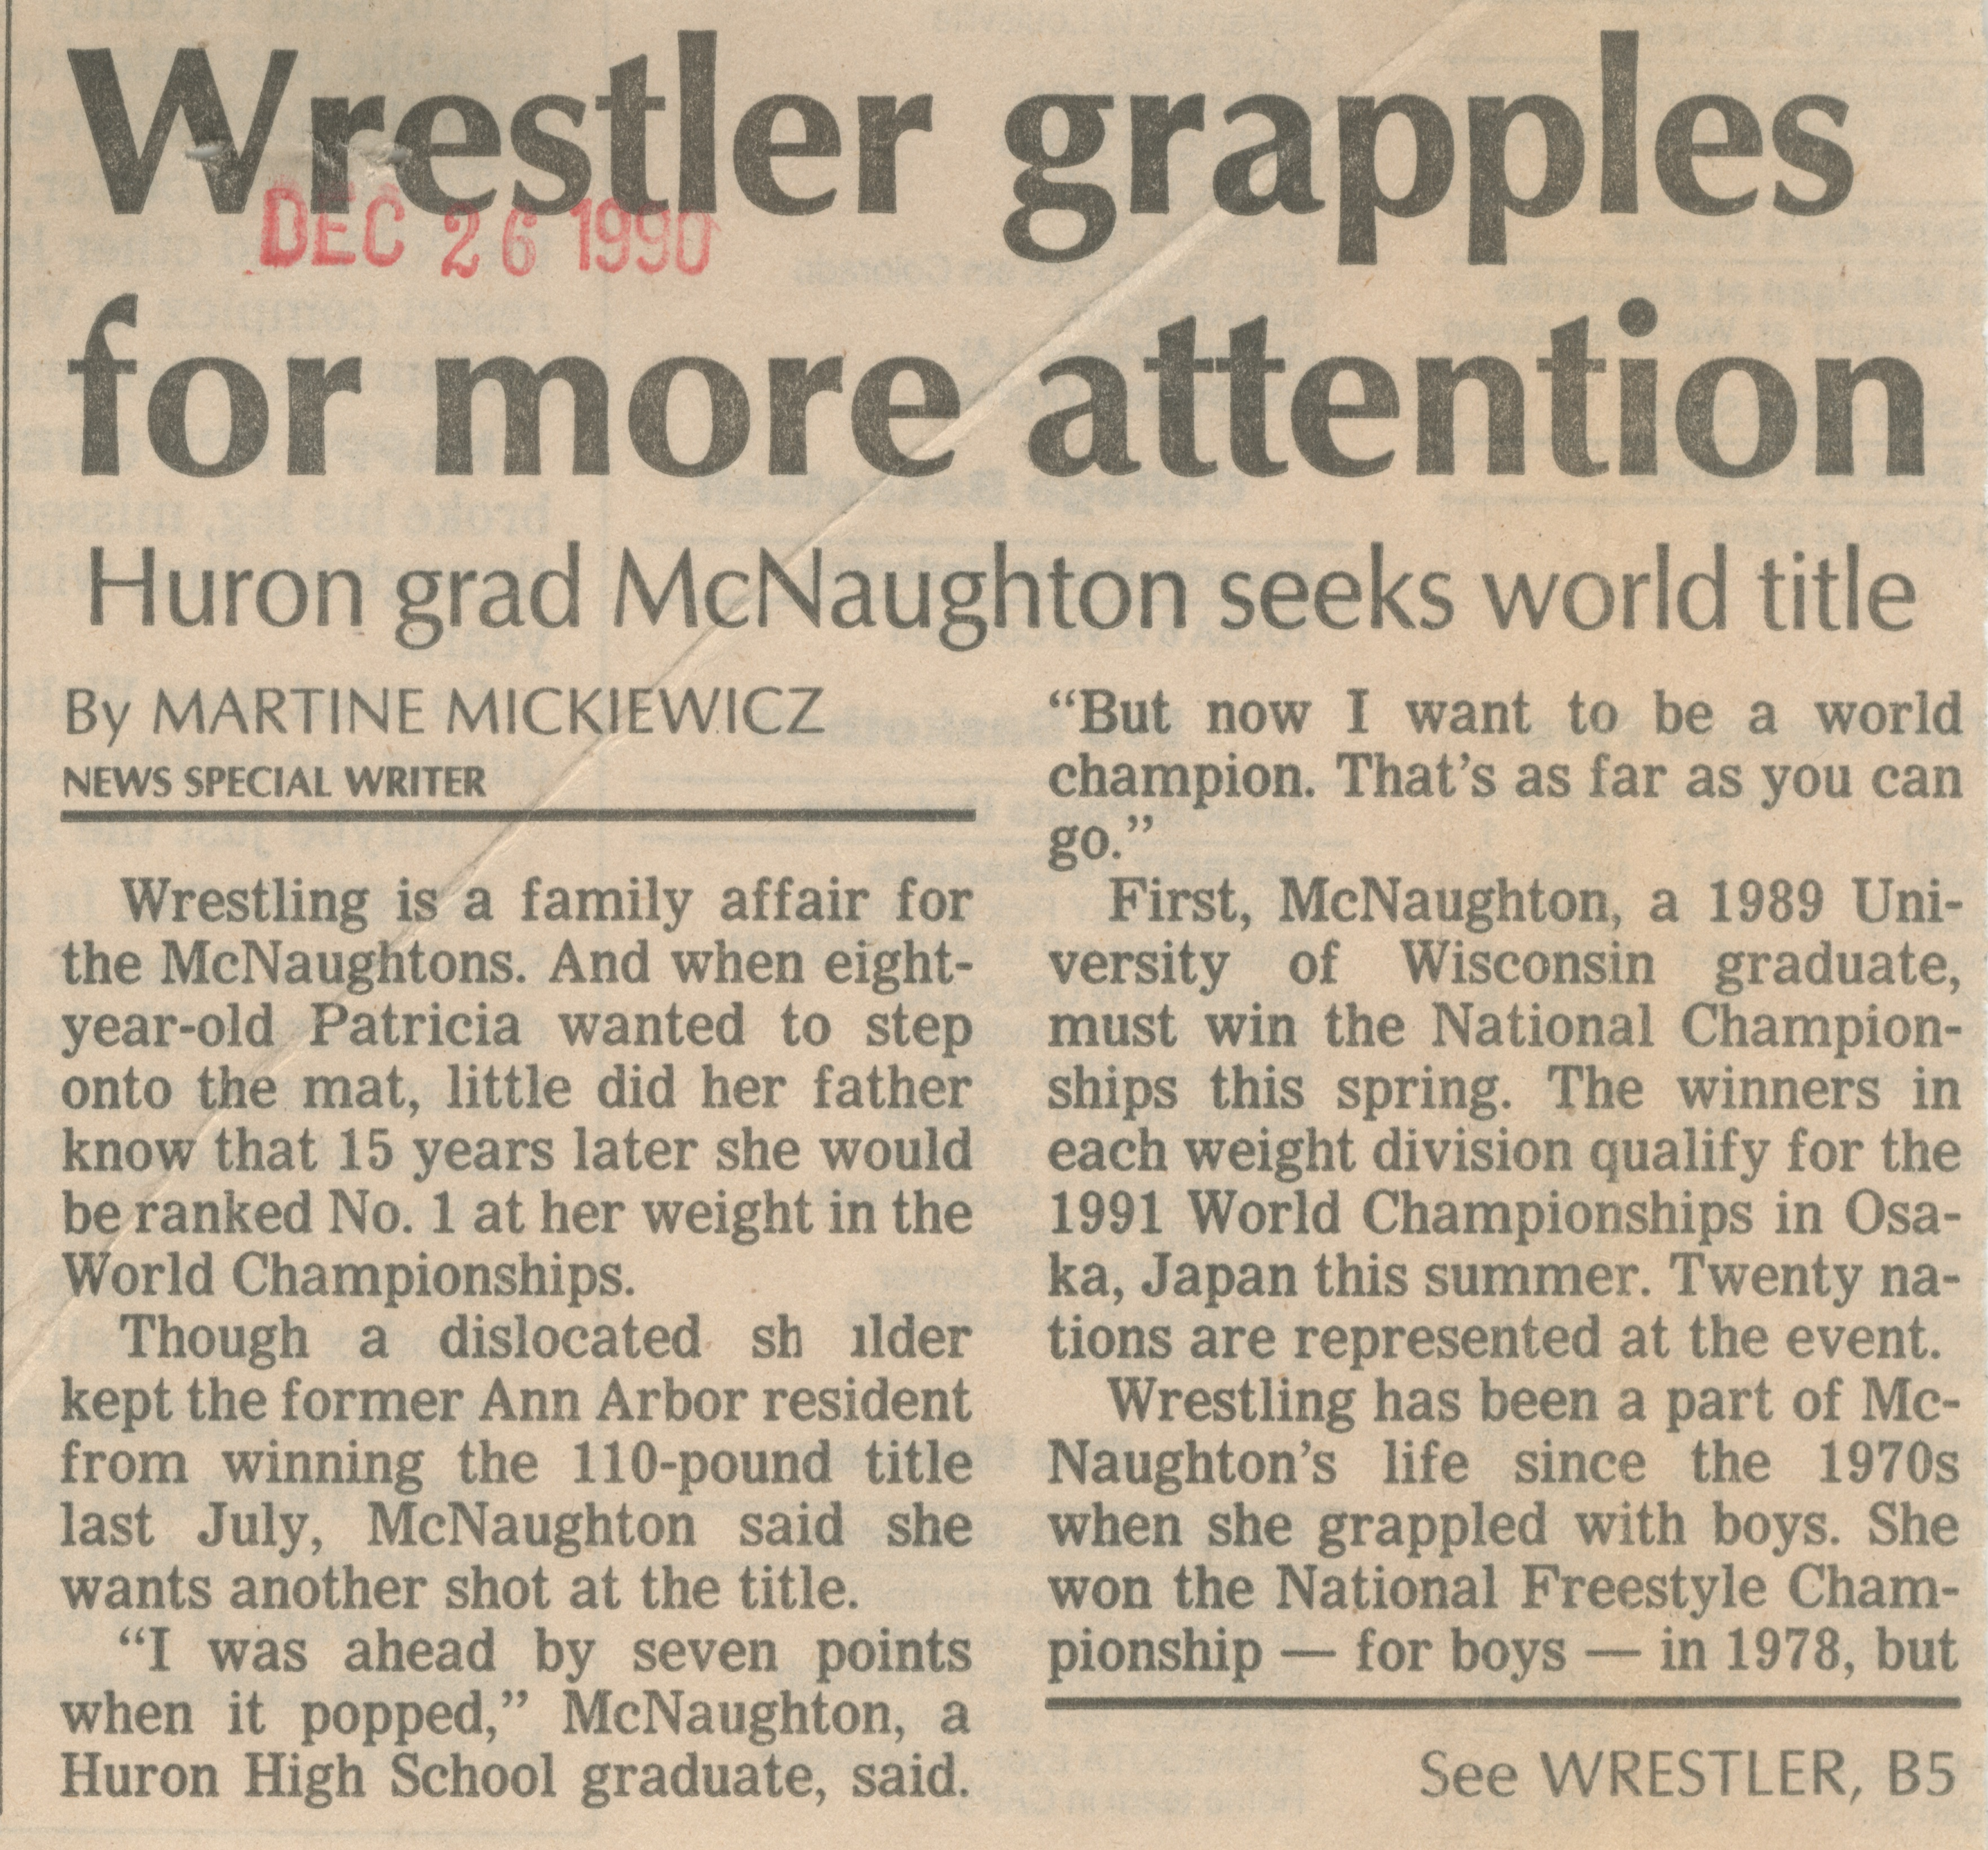 Wrestler grapples for more attention image